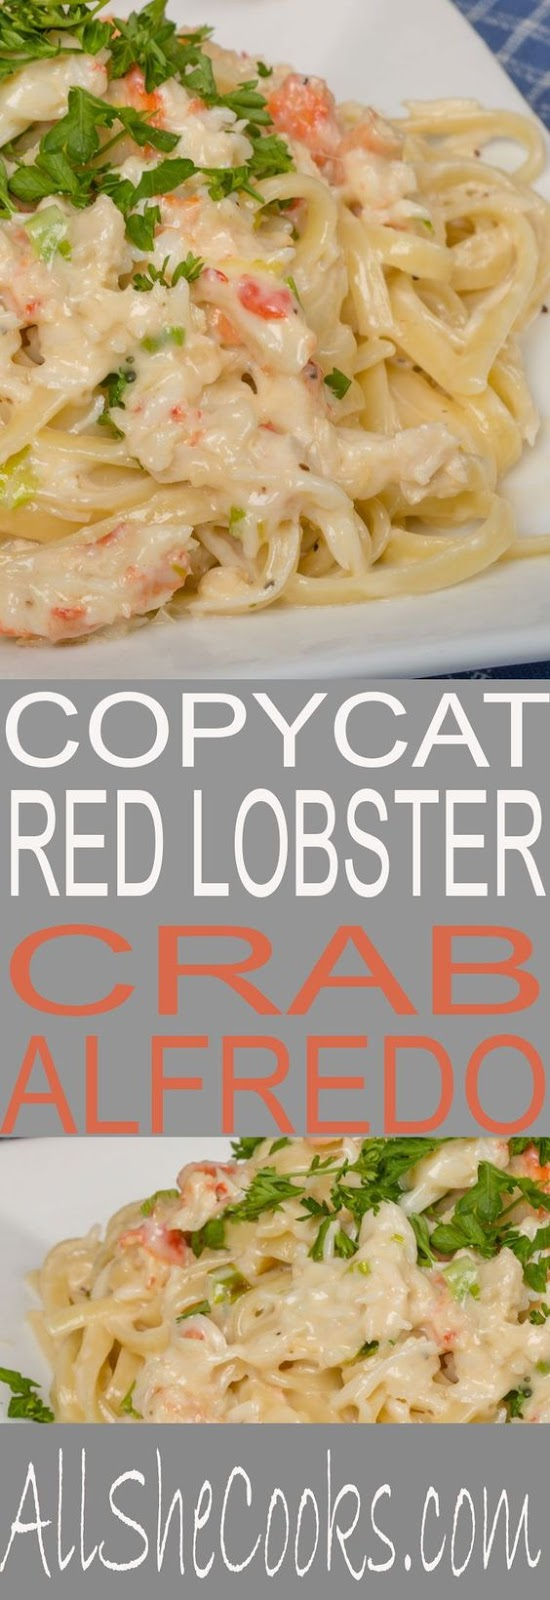 ★★★★☆ 7561 ratings | COPYCAT RED LOBSTER CRAB ALFREDO #HEALTHYFOOD #EASYRECIPES #DINNER #LAUCH #DELICIOUS #EASY #HOLIDAYS #RECIPE #COPYCAT #RED #LOBSTER #CRAB #ALFREDO